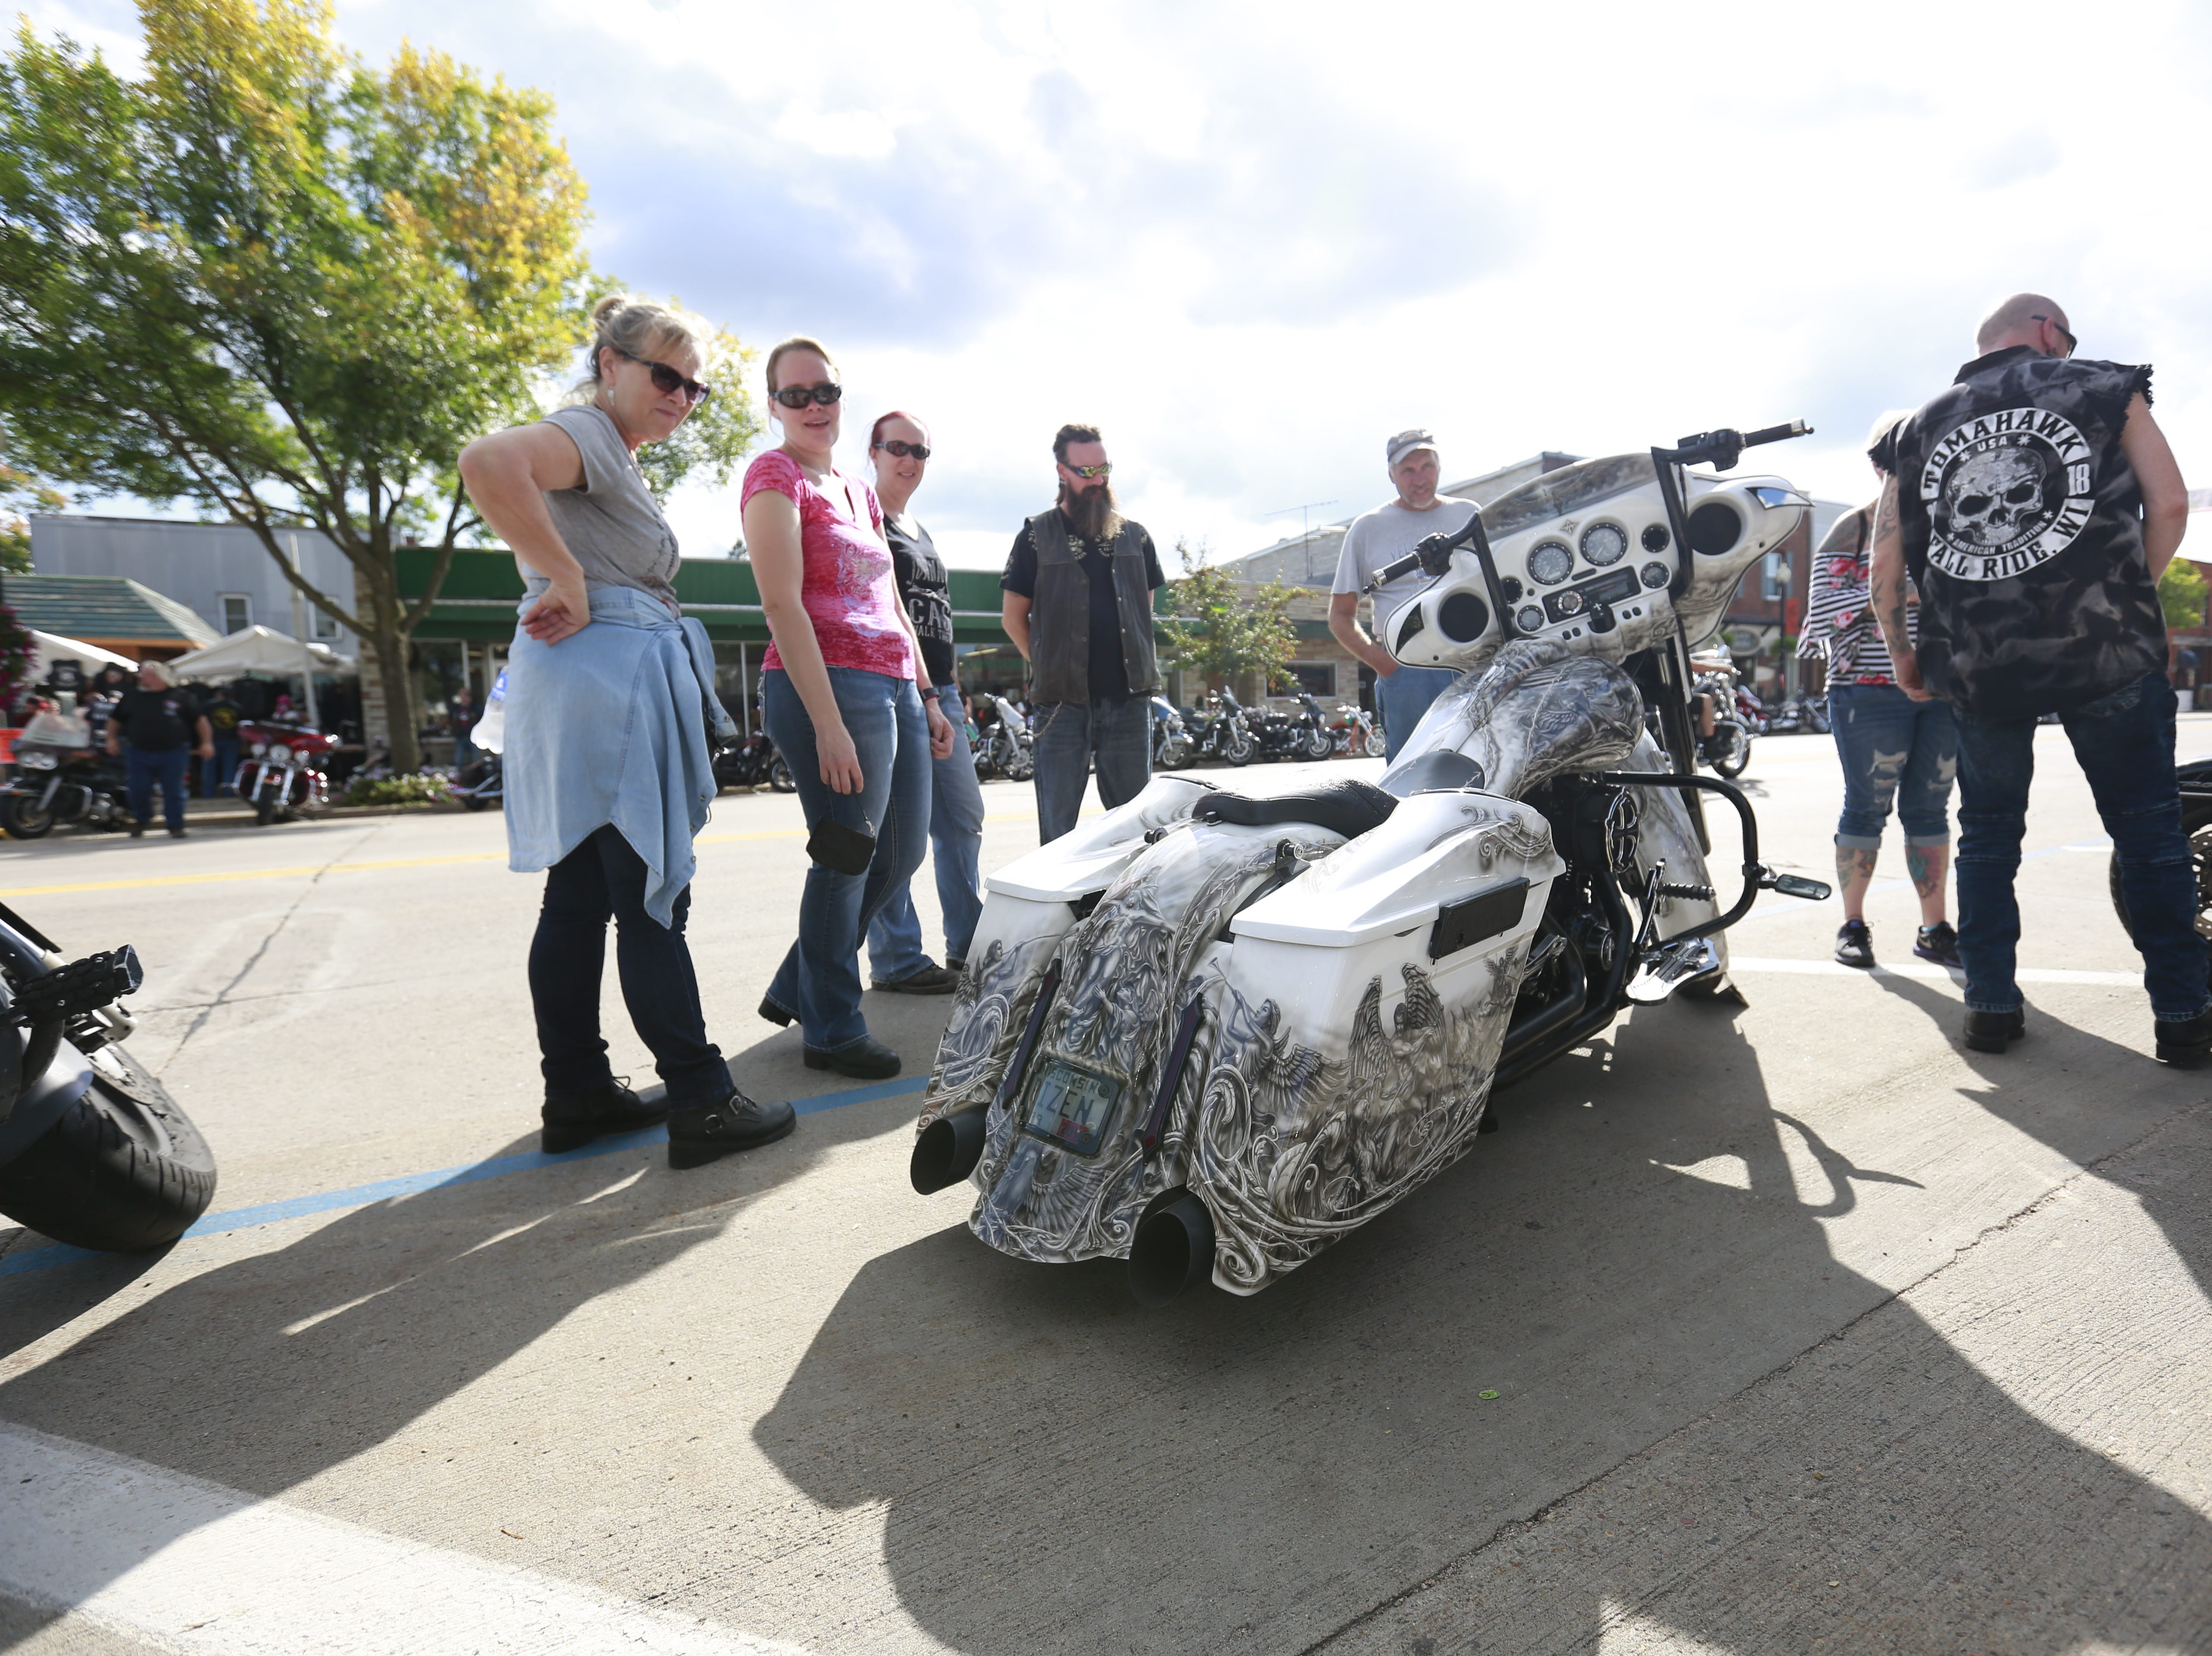 People gather to look on a motorcycle during the 37th Annual Tomahawk Fall Ride Friday, Sept. 14, 2018, at downtown Tomahawk, Wis. T'xer Zhon Kha/USA TODAY NETWORK-Wisconsin